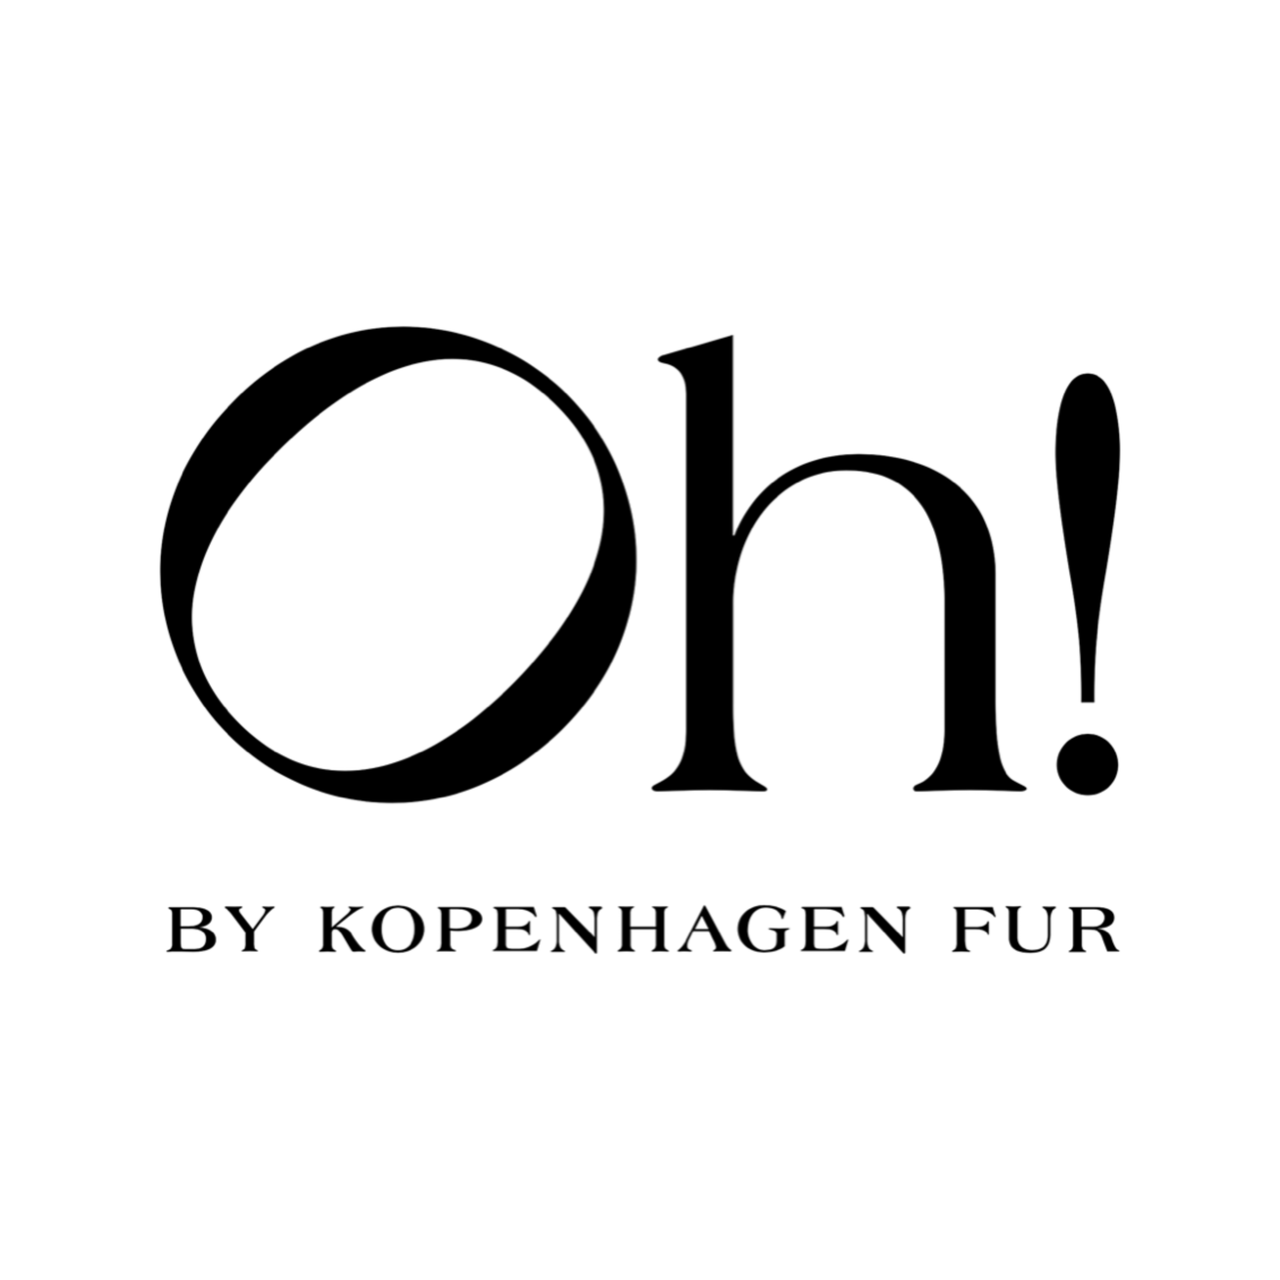 OH! BY KOPENHAGEN FUR